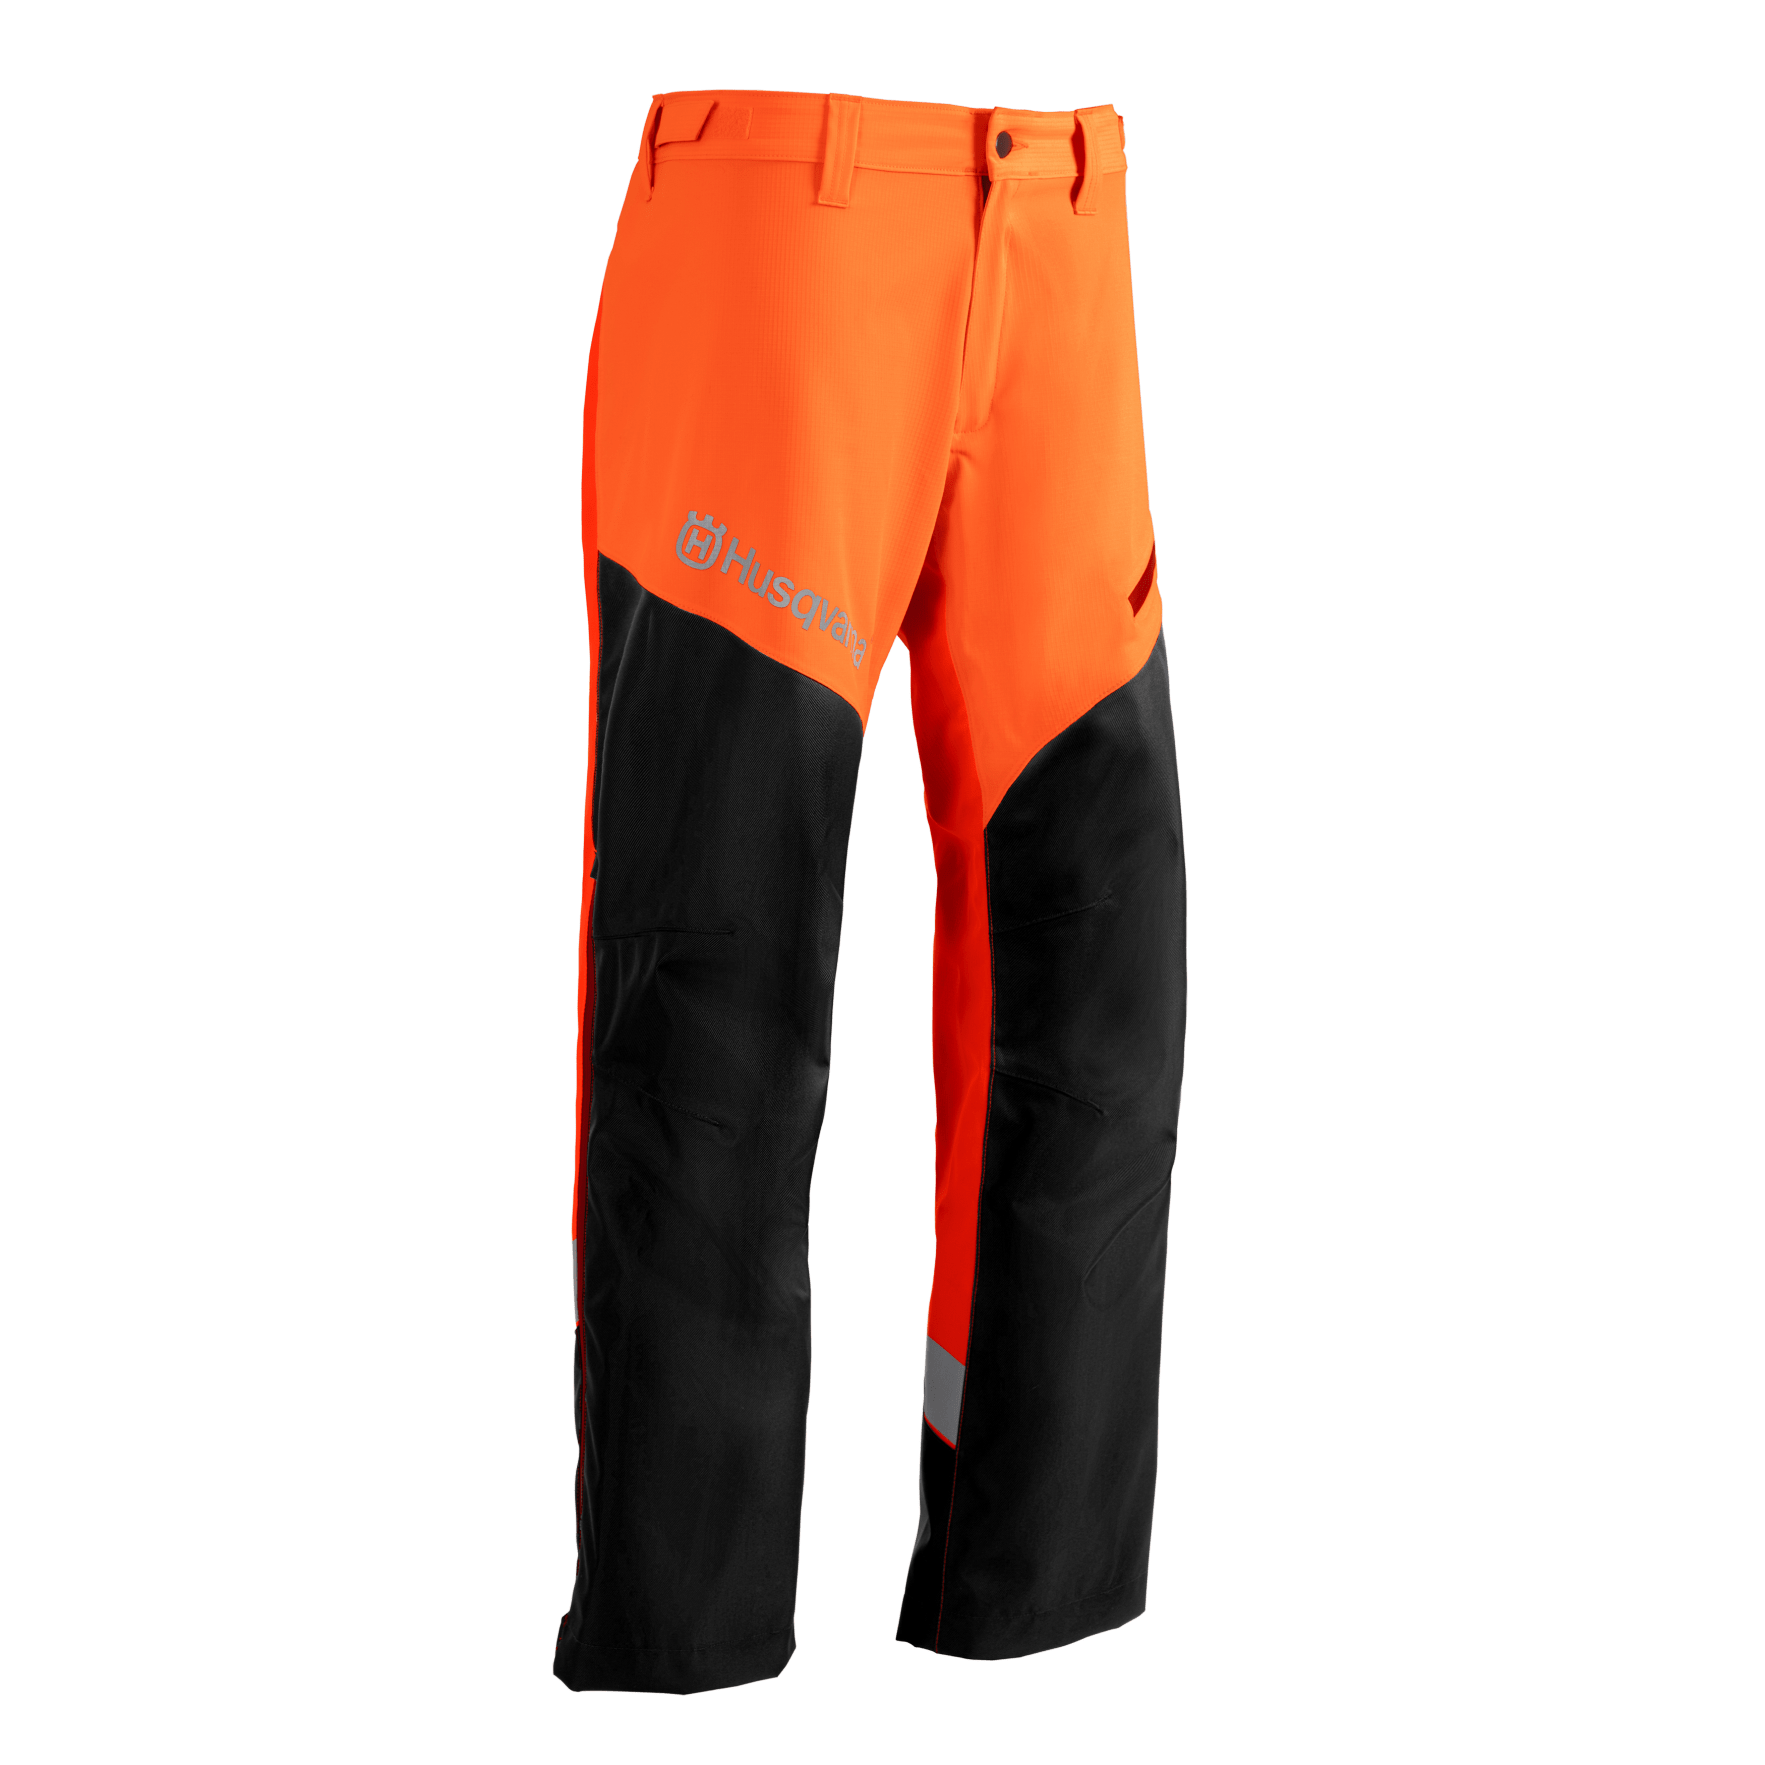 HUSQVARNA Rain Trousers Vent, Technical - V-Pro Power Equipment